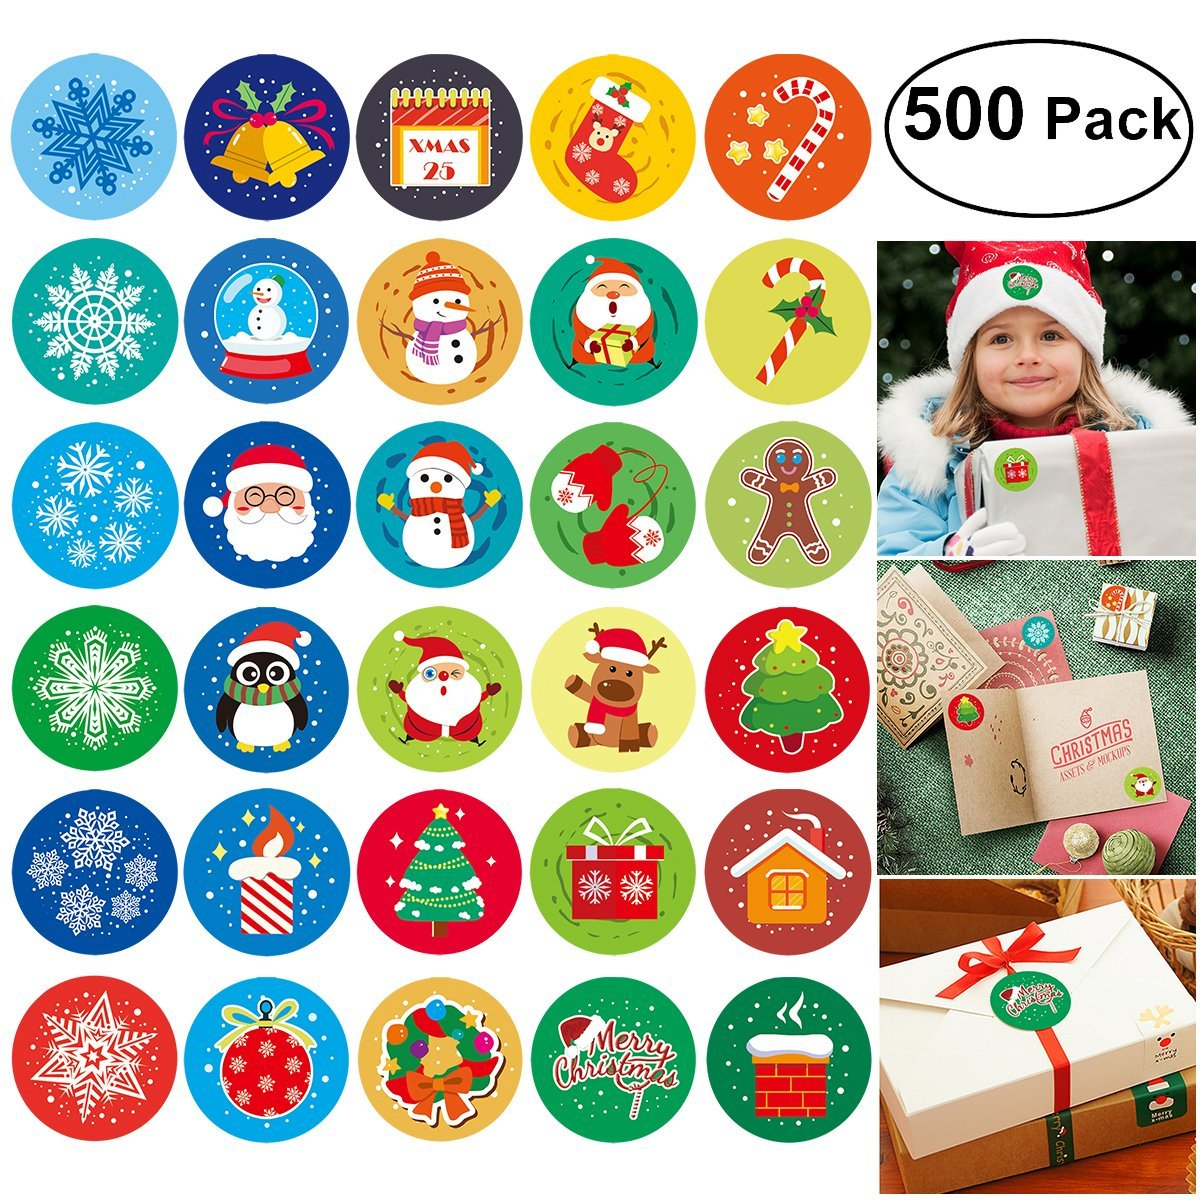 Christmas Stickers, Happy New Year Sticker 500 Assorted Adhesive Roll  Stickers 30 Patterns in 5 Rolls, Diameter 1 1⁄2